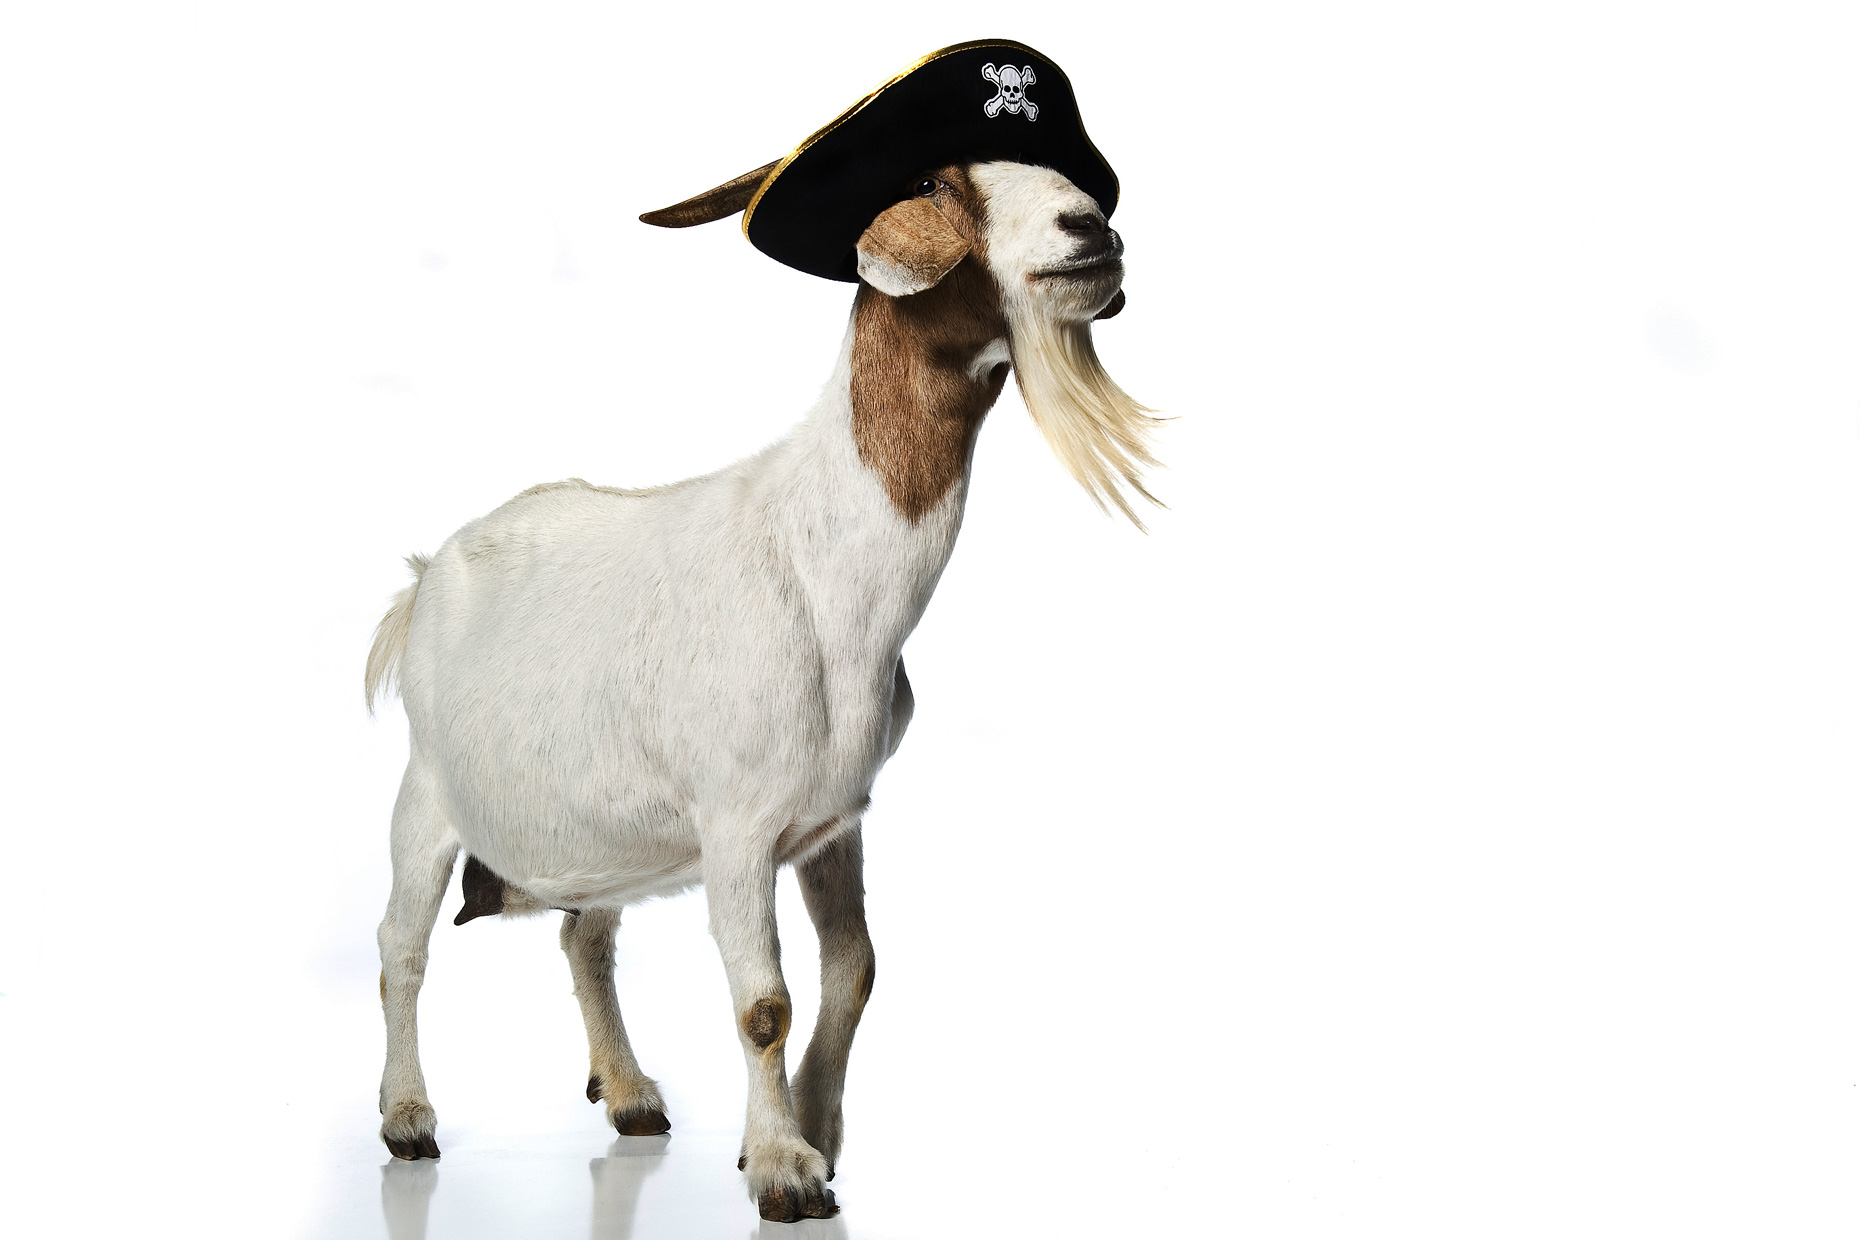 Pirate_Goat